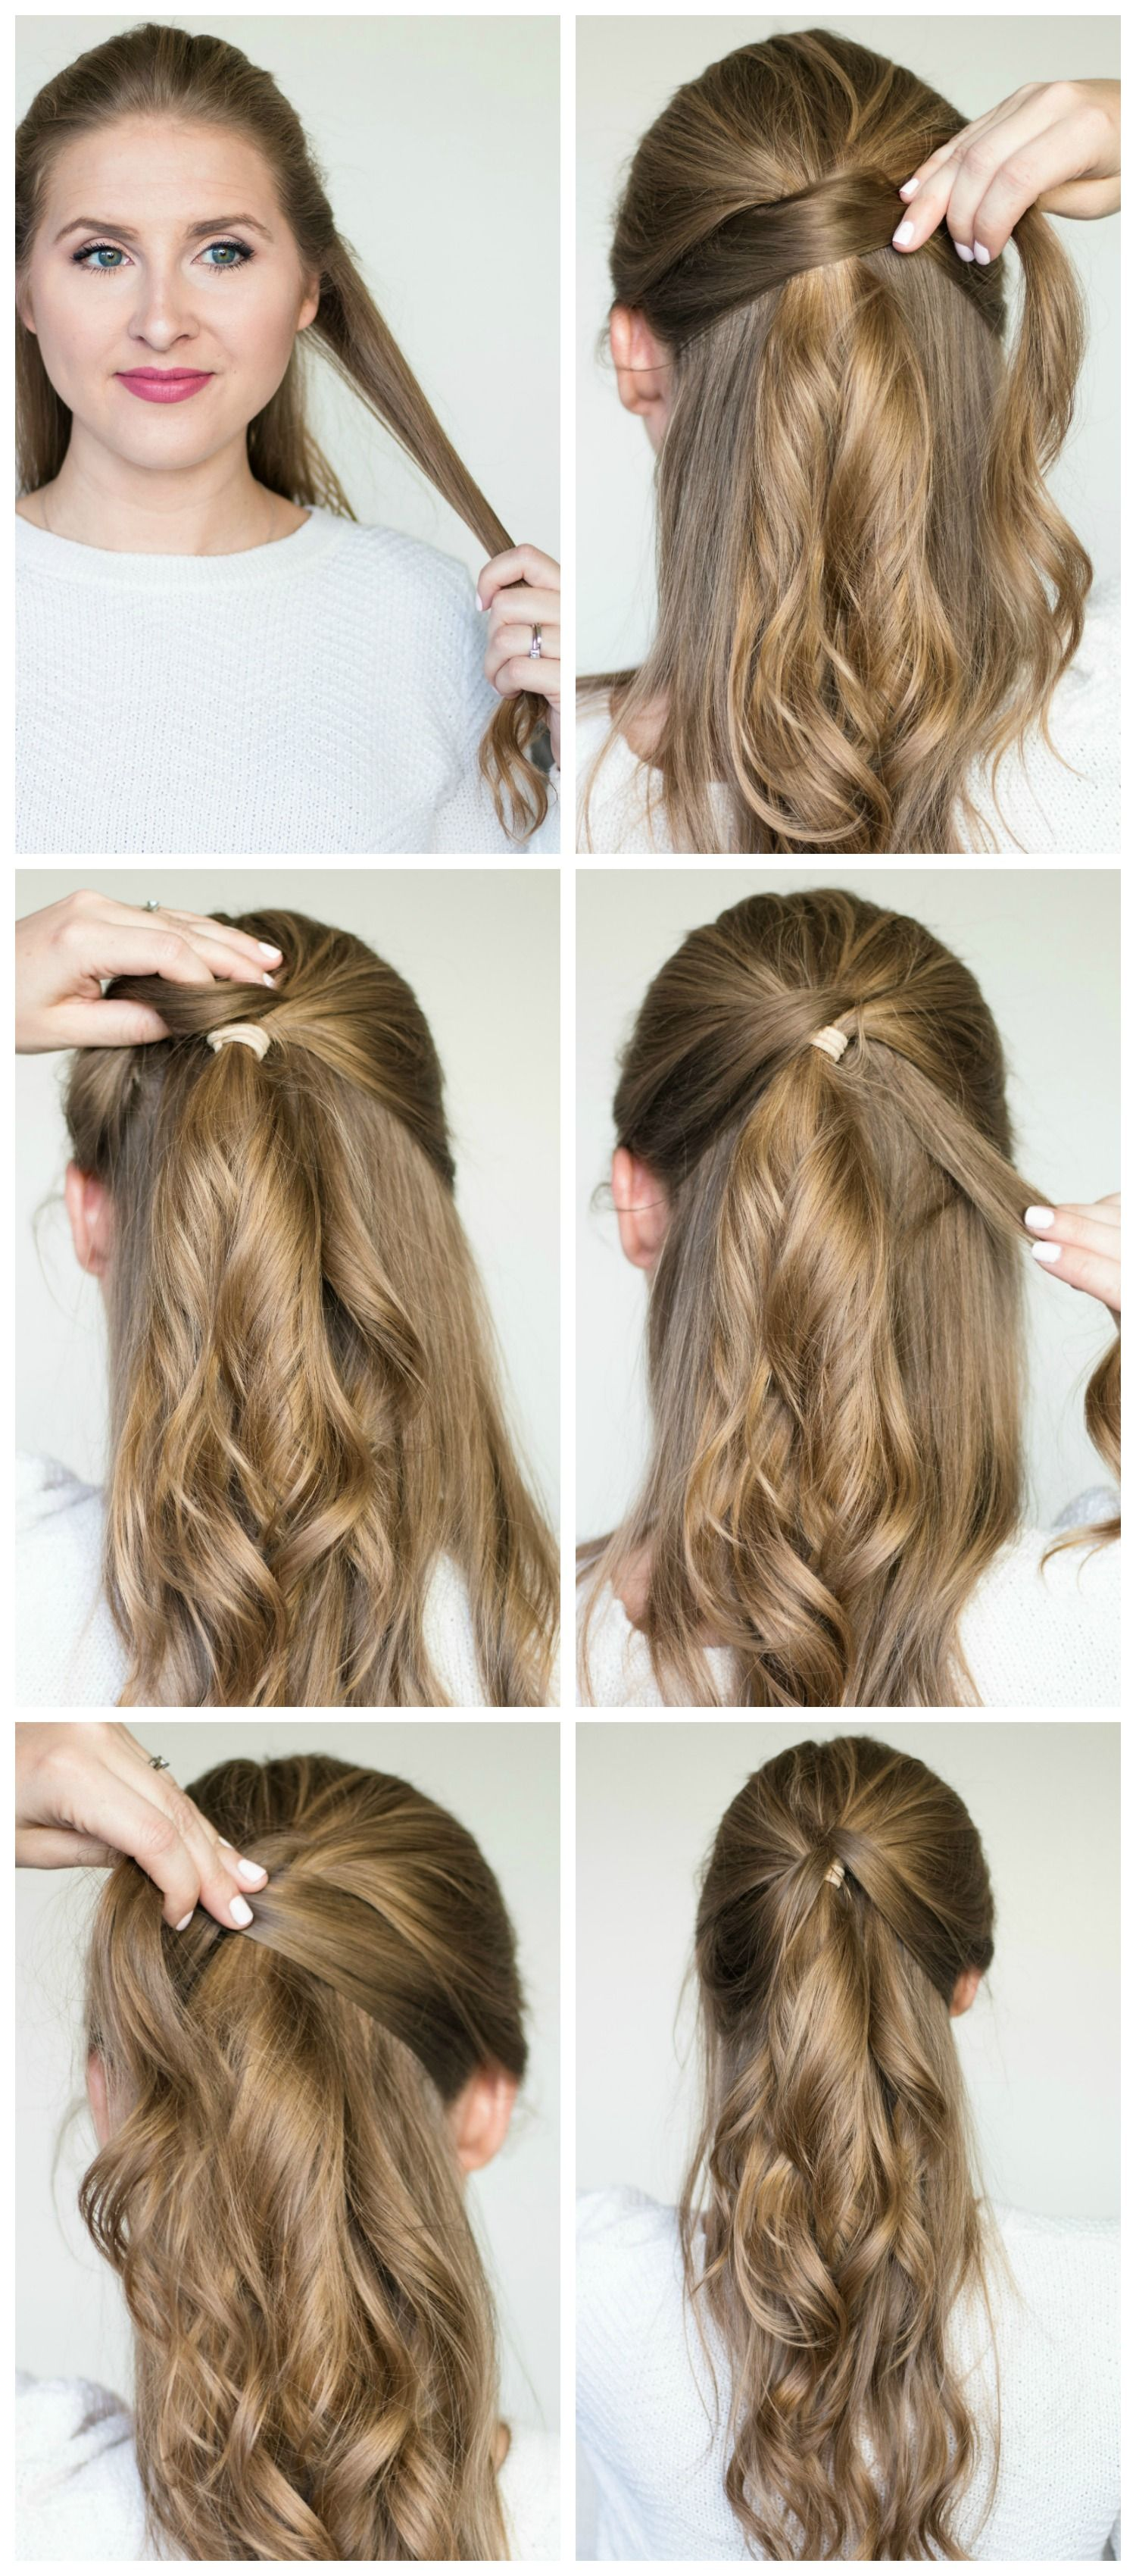 3 quick and easy hair styles + step-by-step tutorials | hair